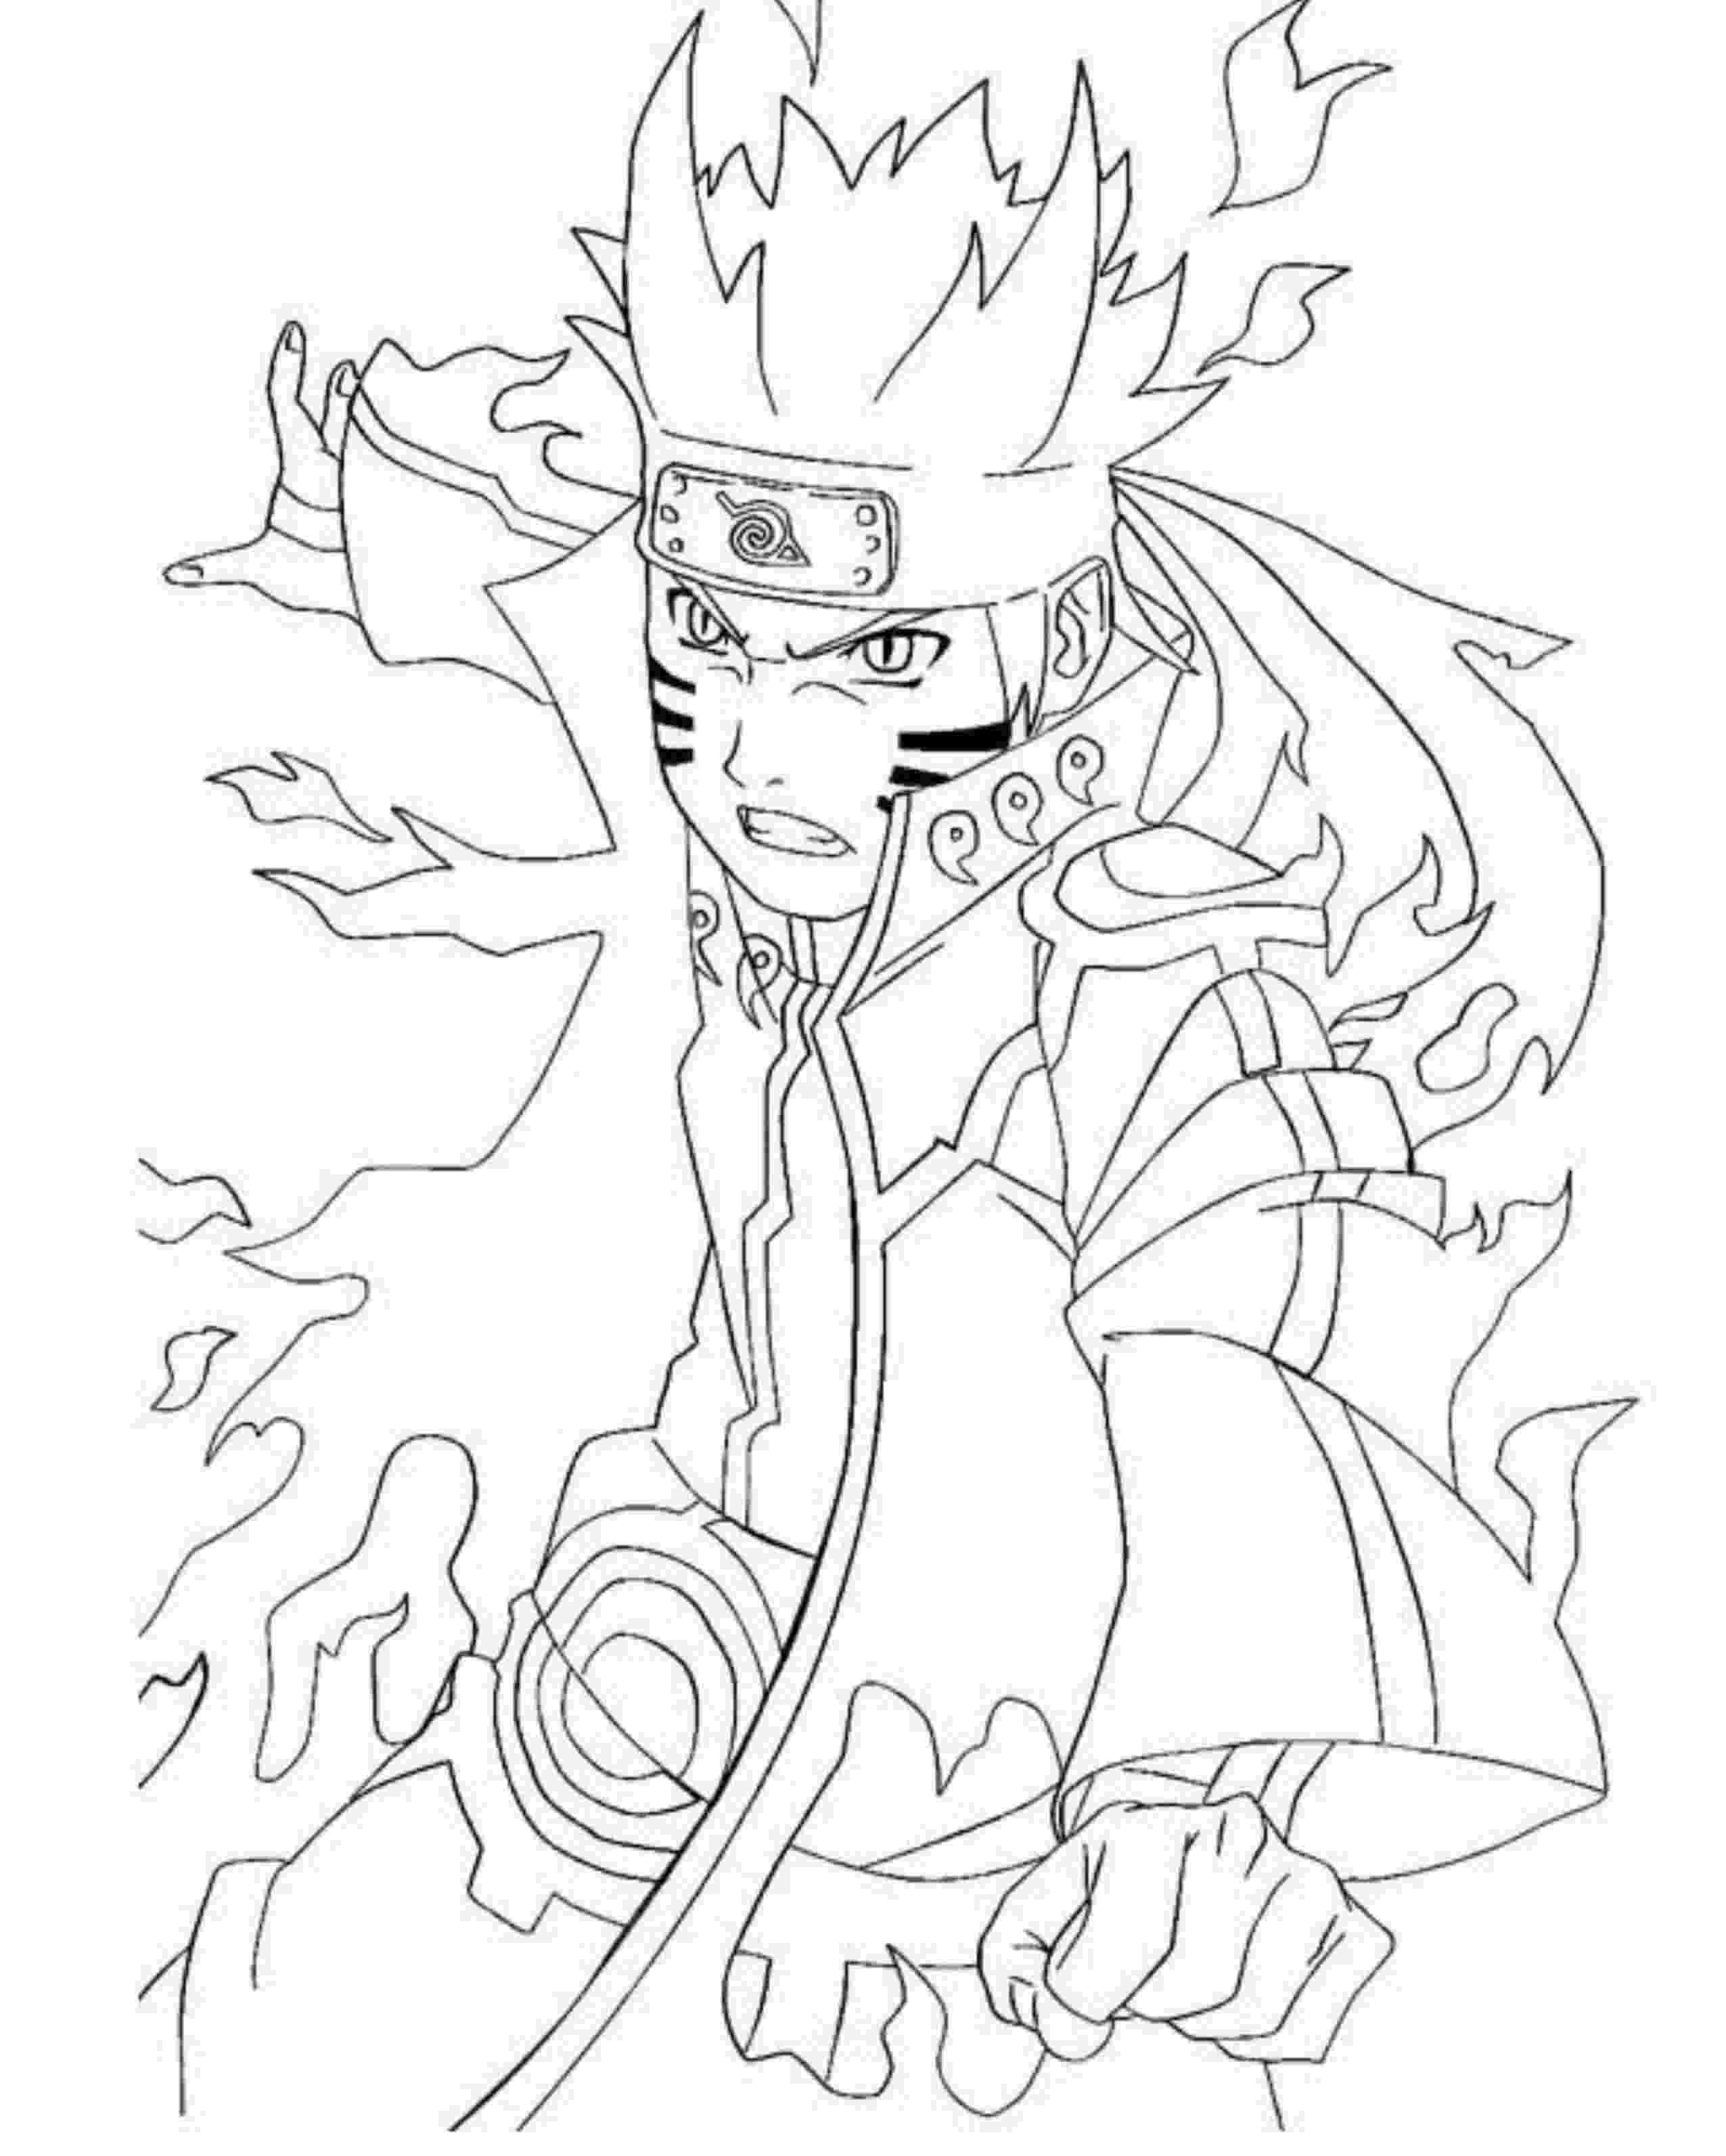 naruto shippuden coloring pages naruto shippuden coloring pages to download and print for free coloring pages shippuden naruto